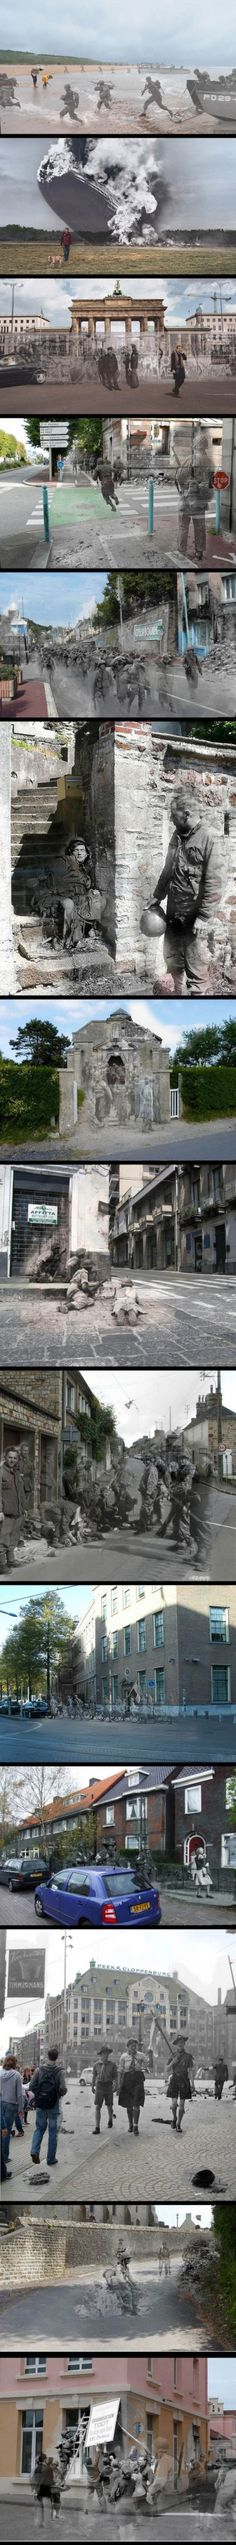 Historical events layered over modern-day locations